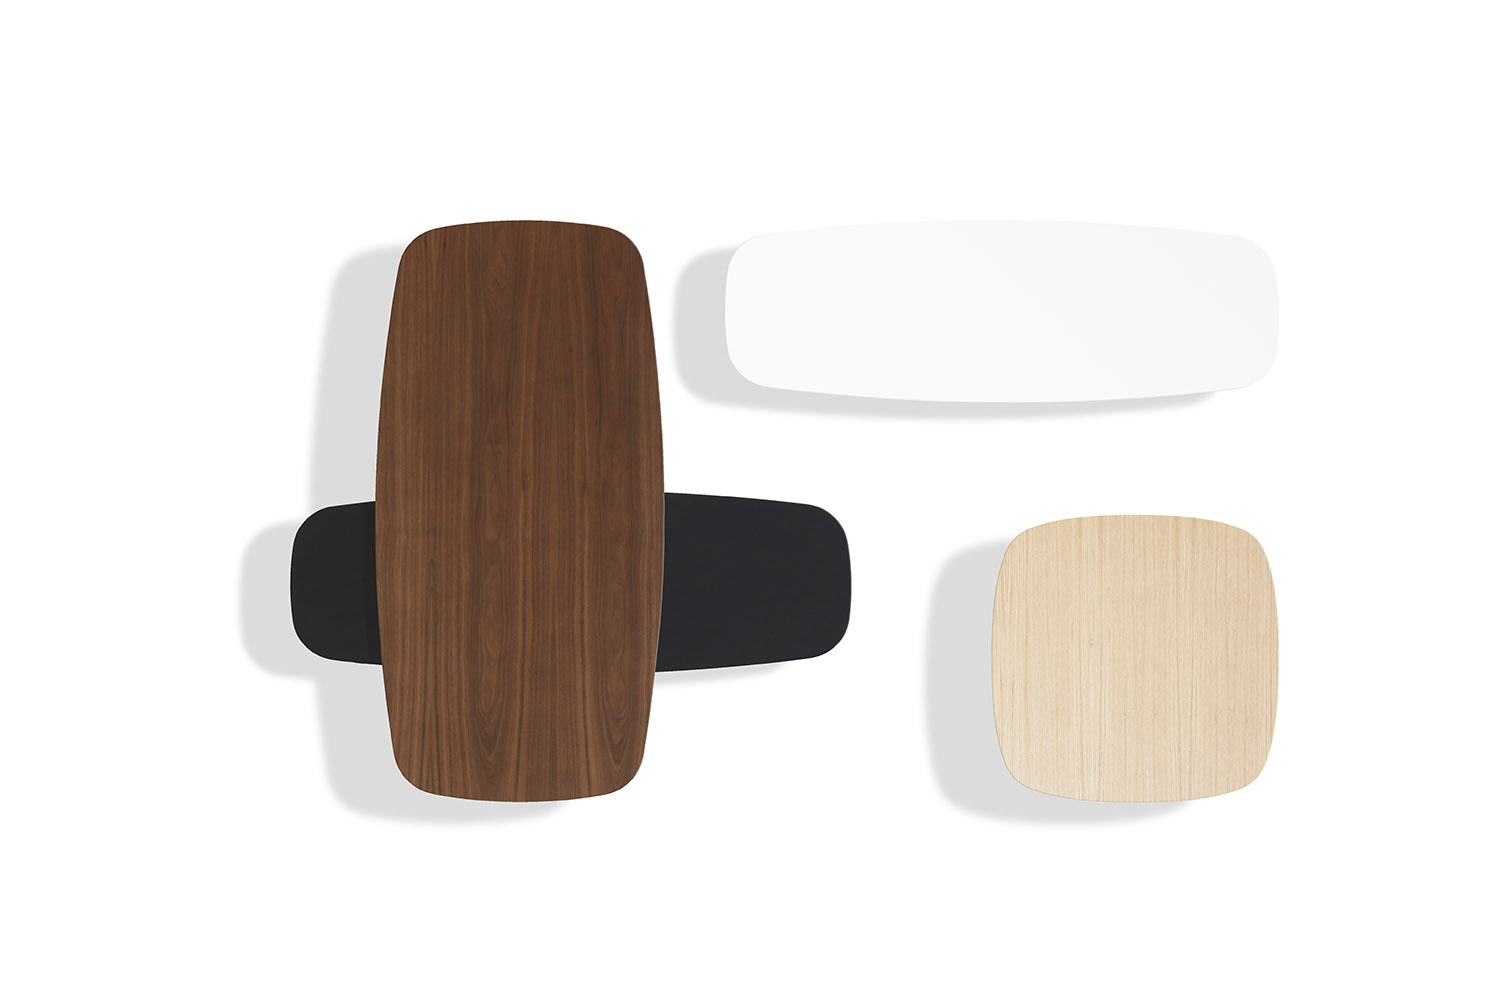 stua-solapa-0010-table